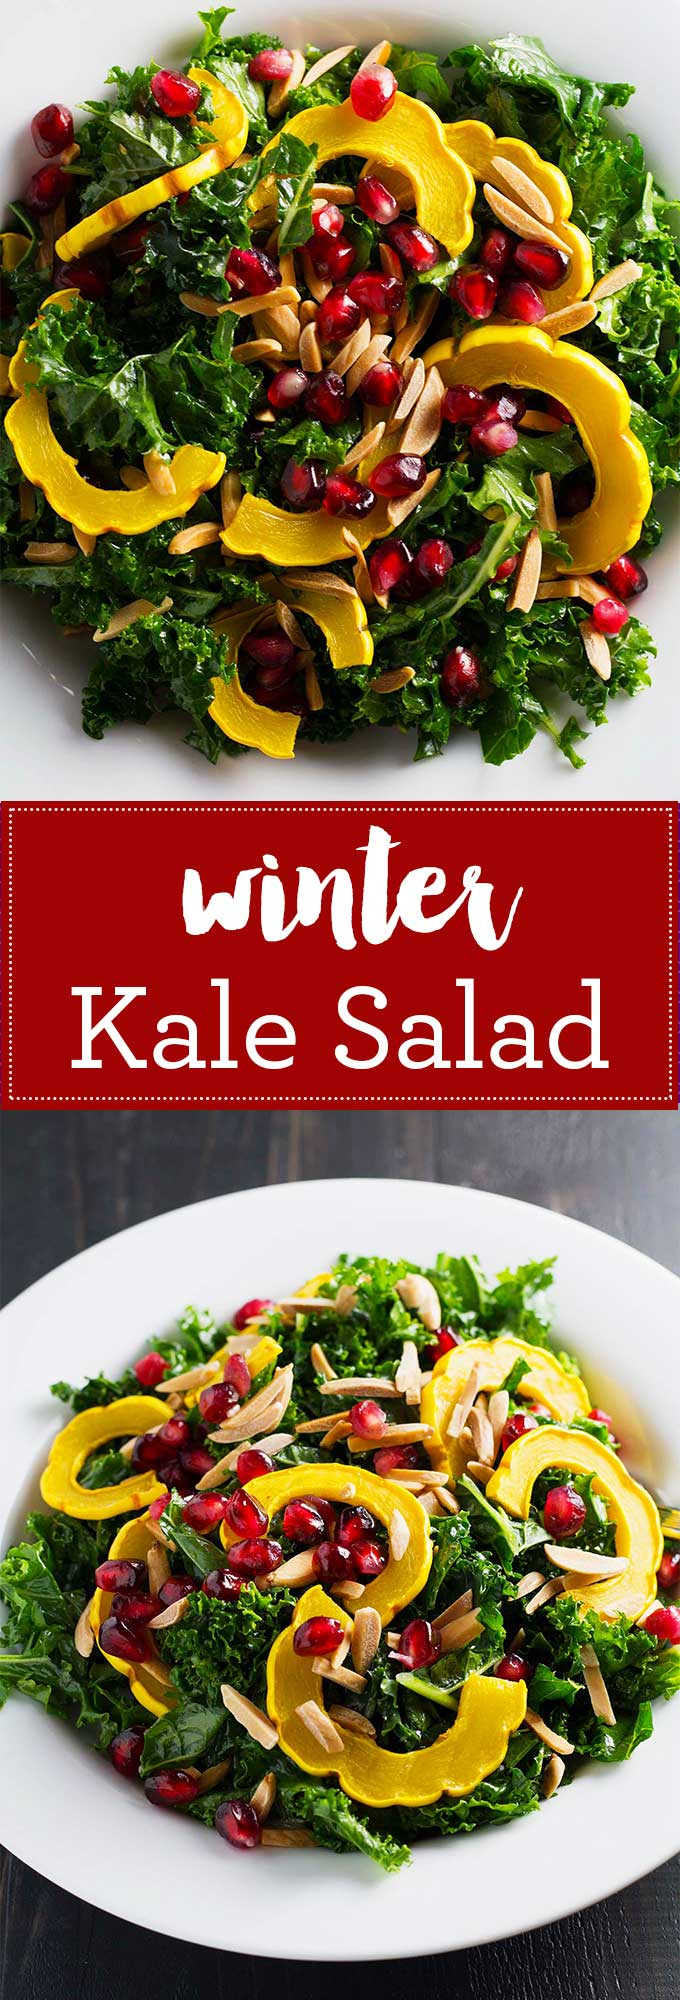 winter-kale-salad-pin